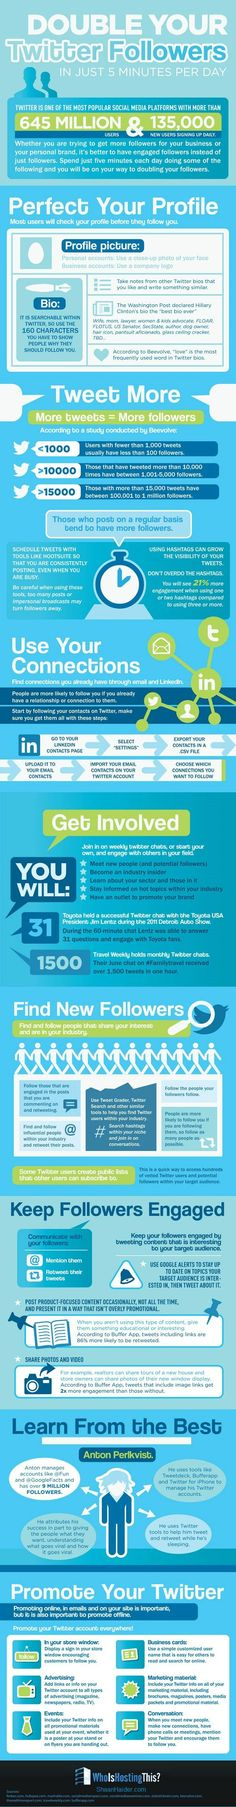 Tips and Tricks to Get More #Twitter Followers